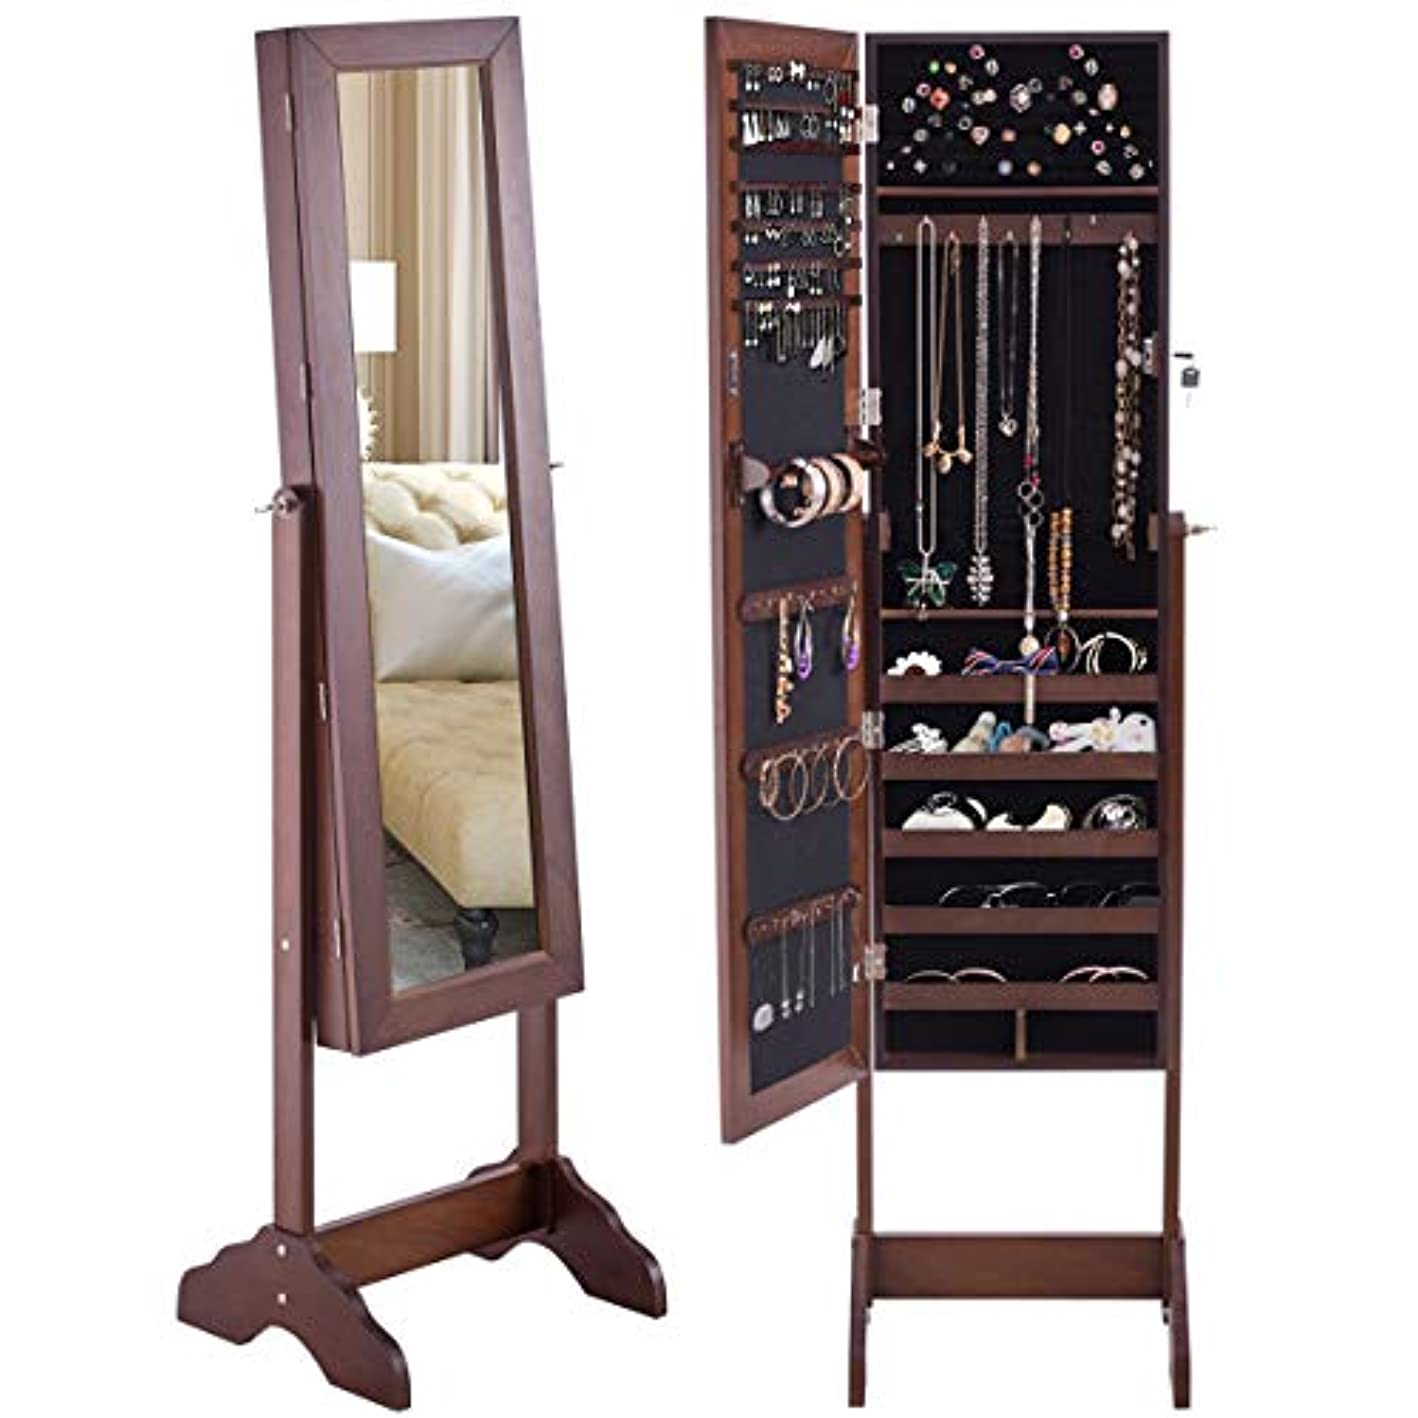 Giantex Jewelry Cabinet Armoire with Mirror Lockable, Large Storage 126 Ring Slot 1 Scarf Rod 1 Ponch 24 Hooks Bedroom Adjustable Organizer Box, Mirrored Standing Jewelry Armoires w/ 2 Bottom Cabinets